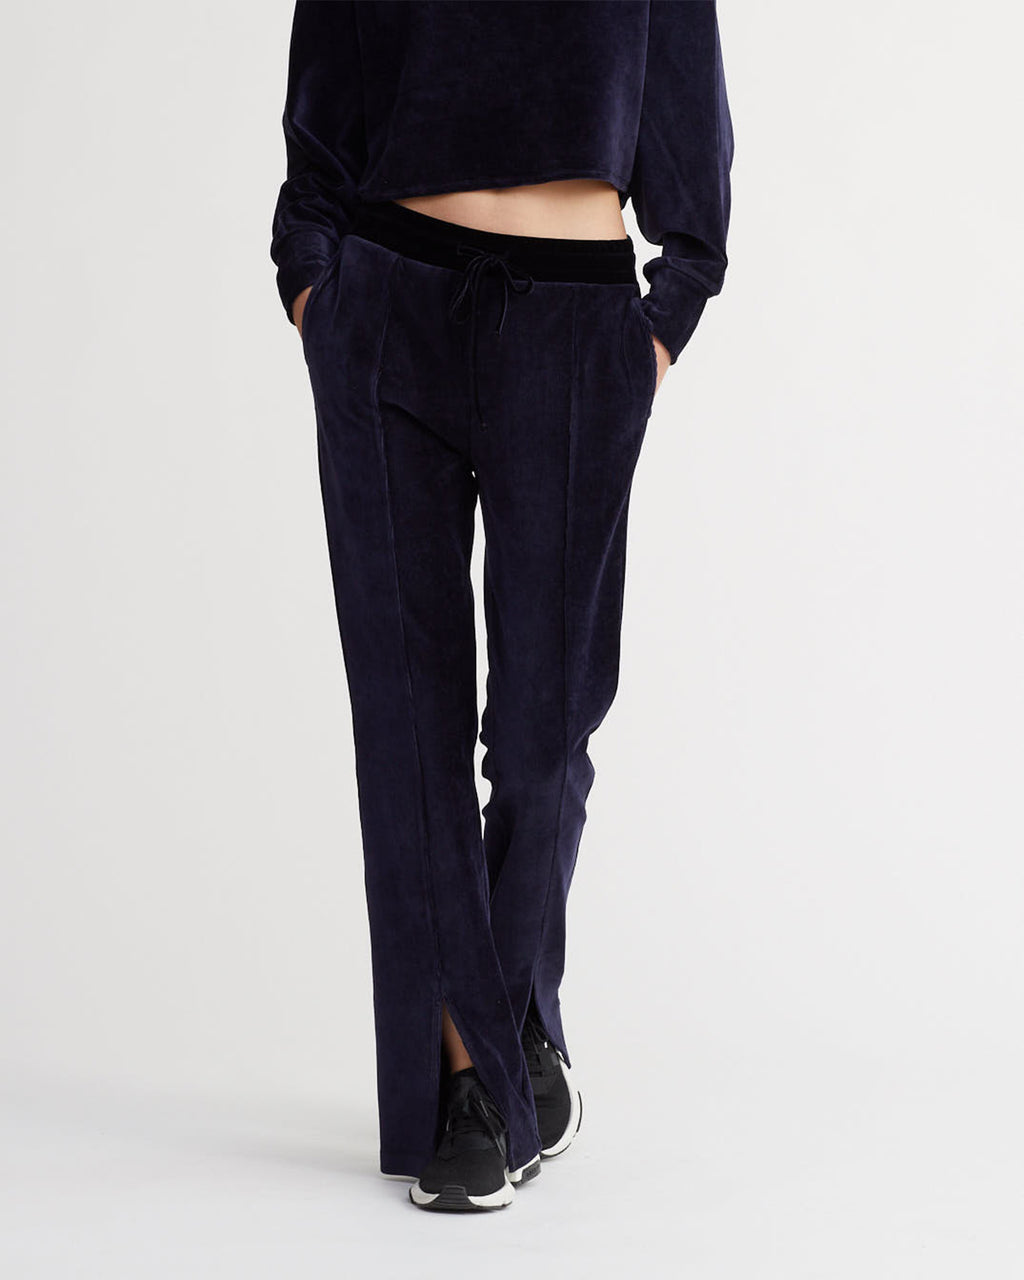 CIAN PANTS NAVY